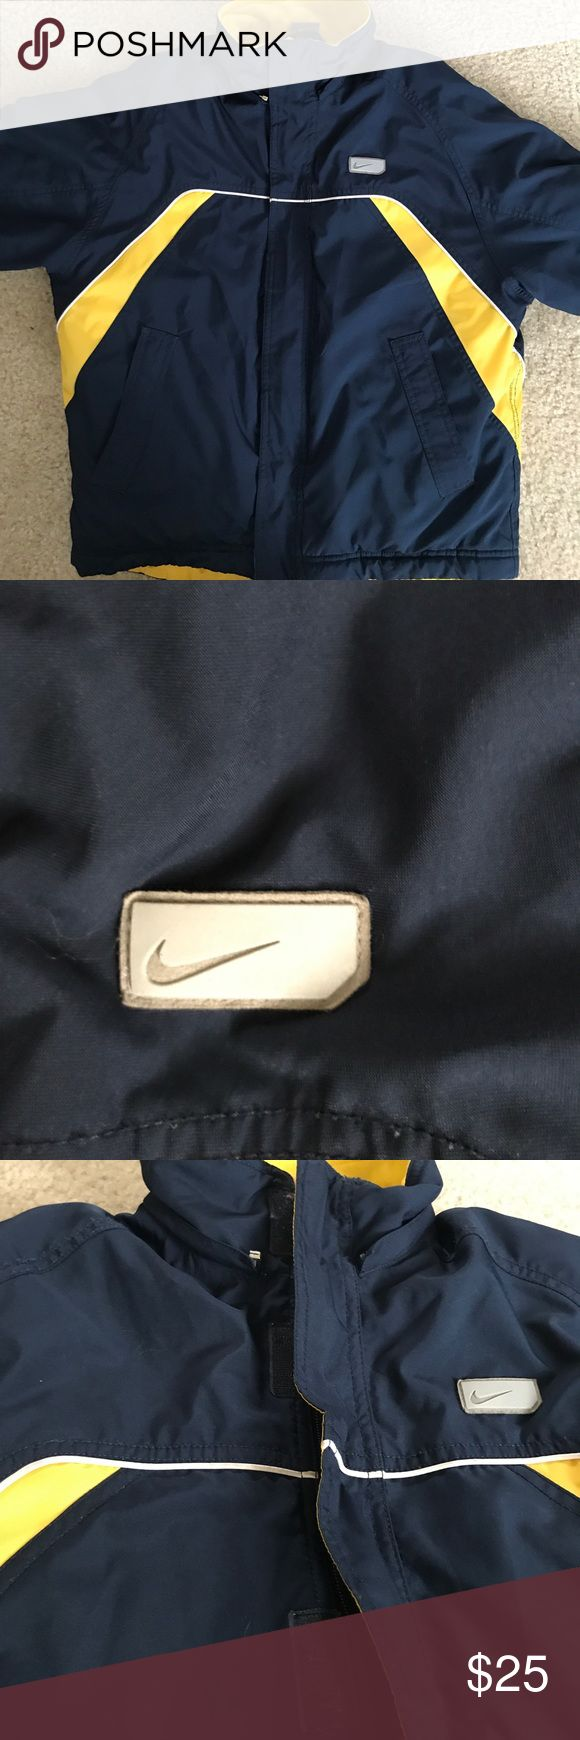 Nike Winter Coat Size S 8 Warm navy and yellow winter coat with white stripe and silver over Nike swoop logo on chest. NIKE on back. Velcro wrists. Zip-up with hidden velcro placket. Stain on back left bottom (shown). Other than that one stain EUC No fading. Just washed and hung up. Nike Size 8 Nike Jackets & Coats